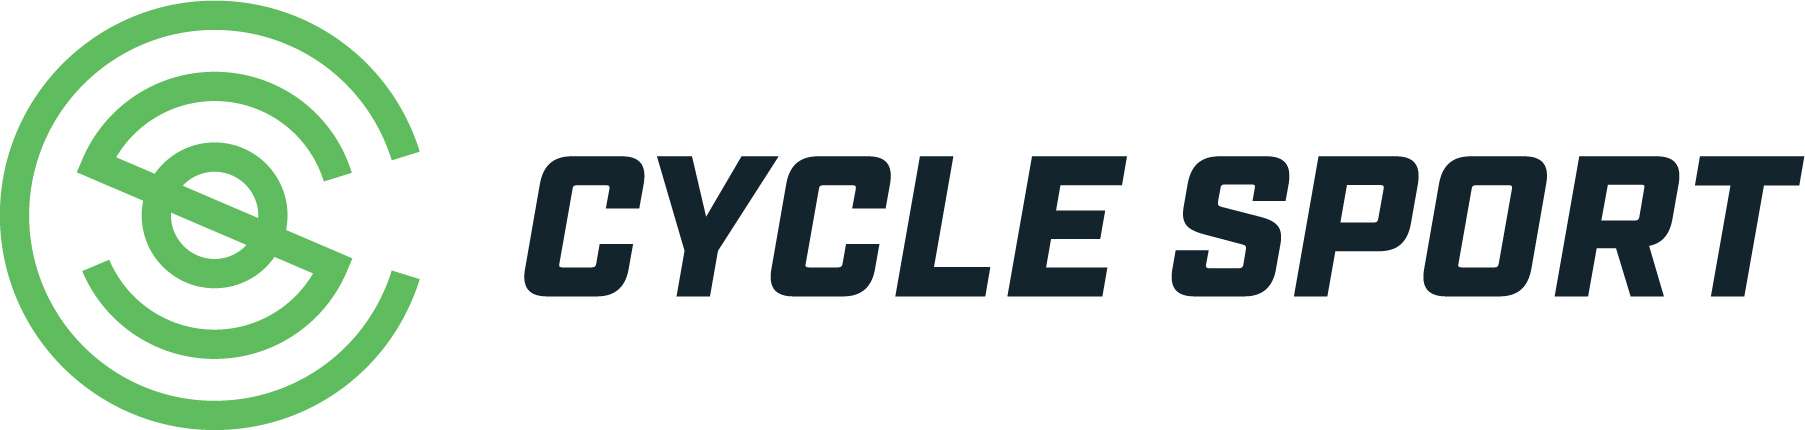 Cycle Sport LLC